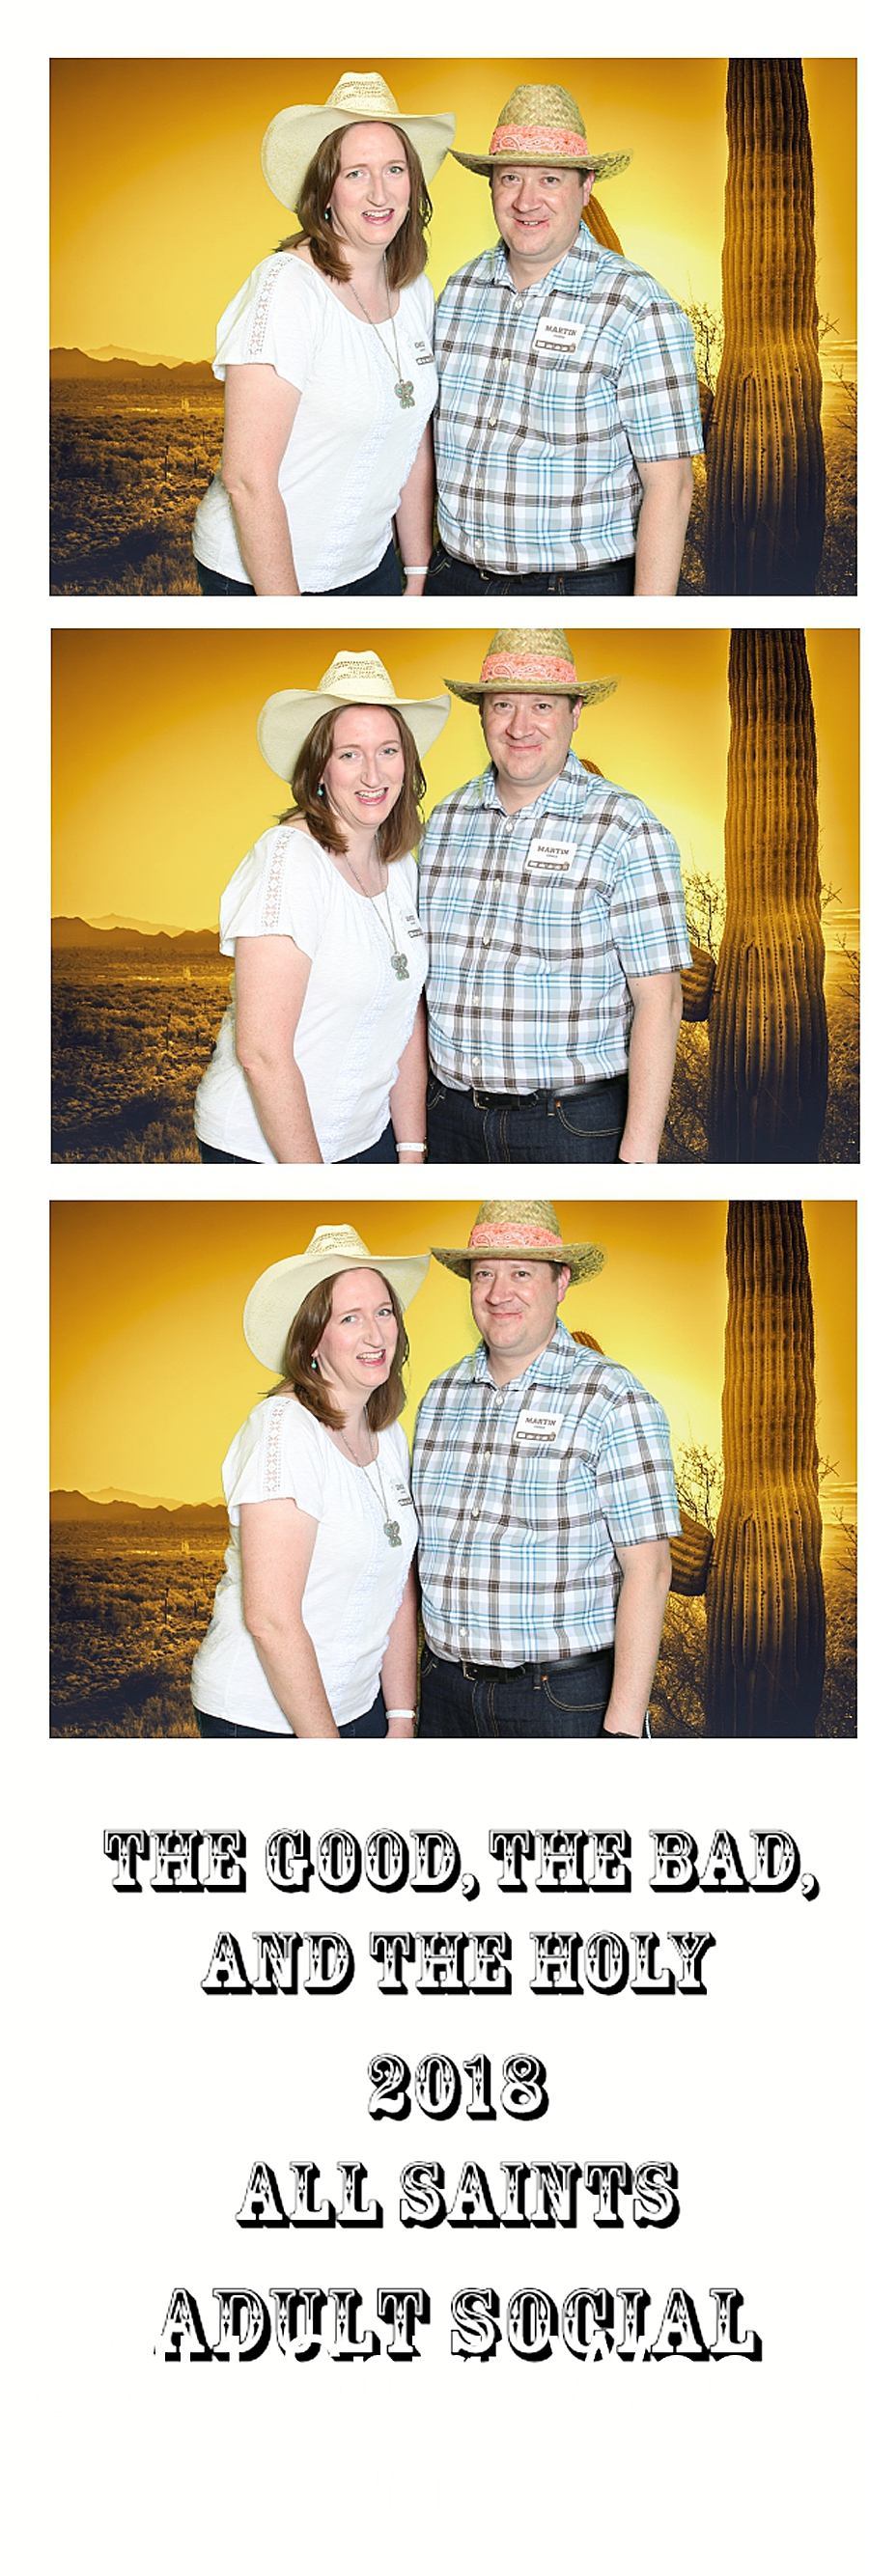 Knoxville Photo Booth_1300.jpg